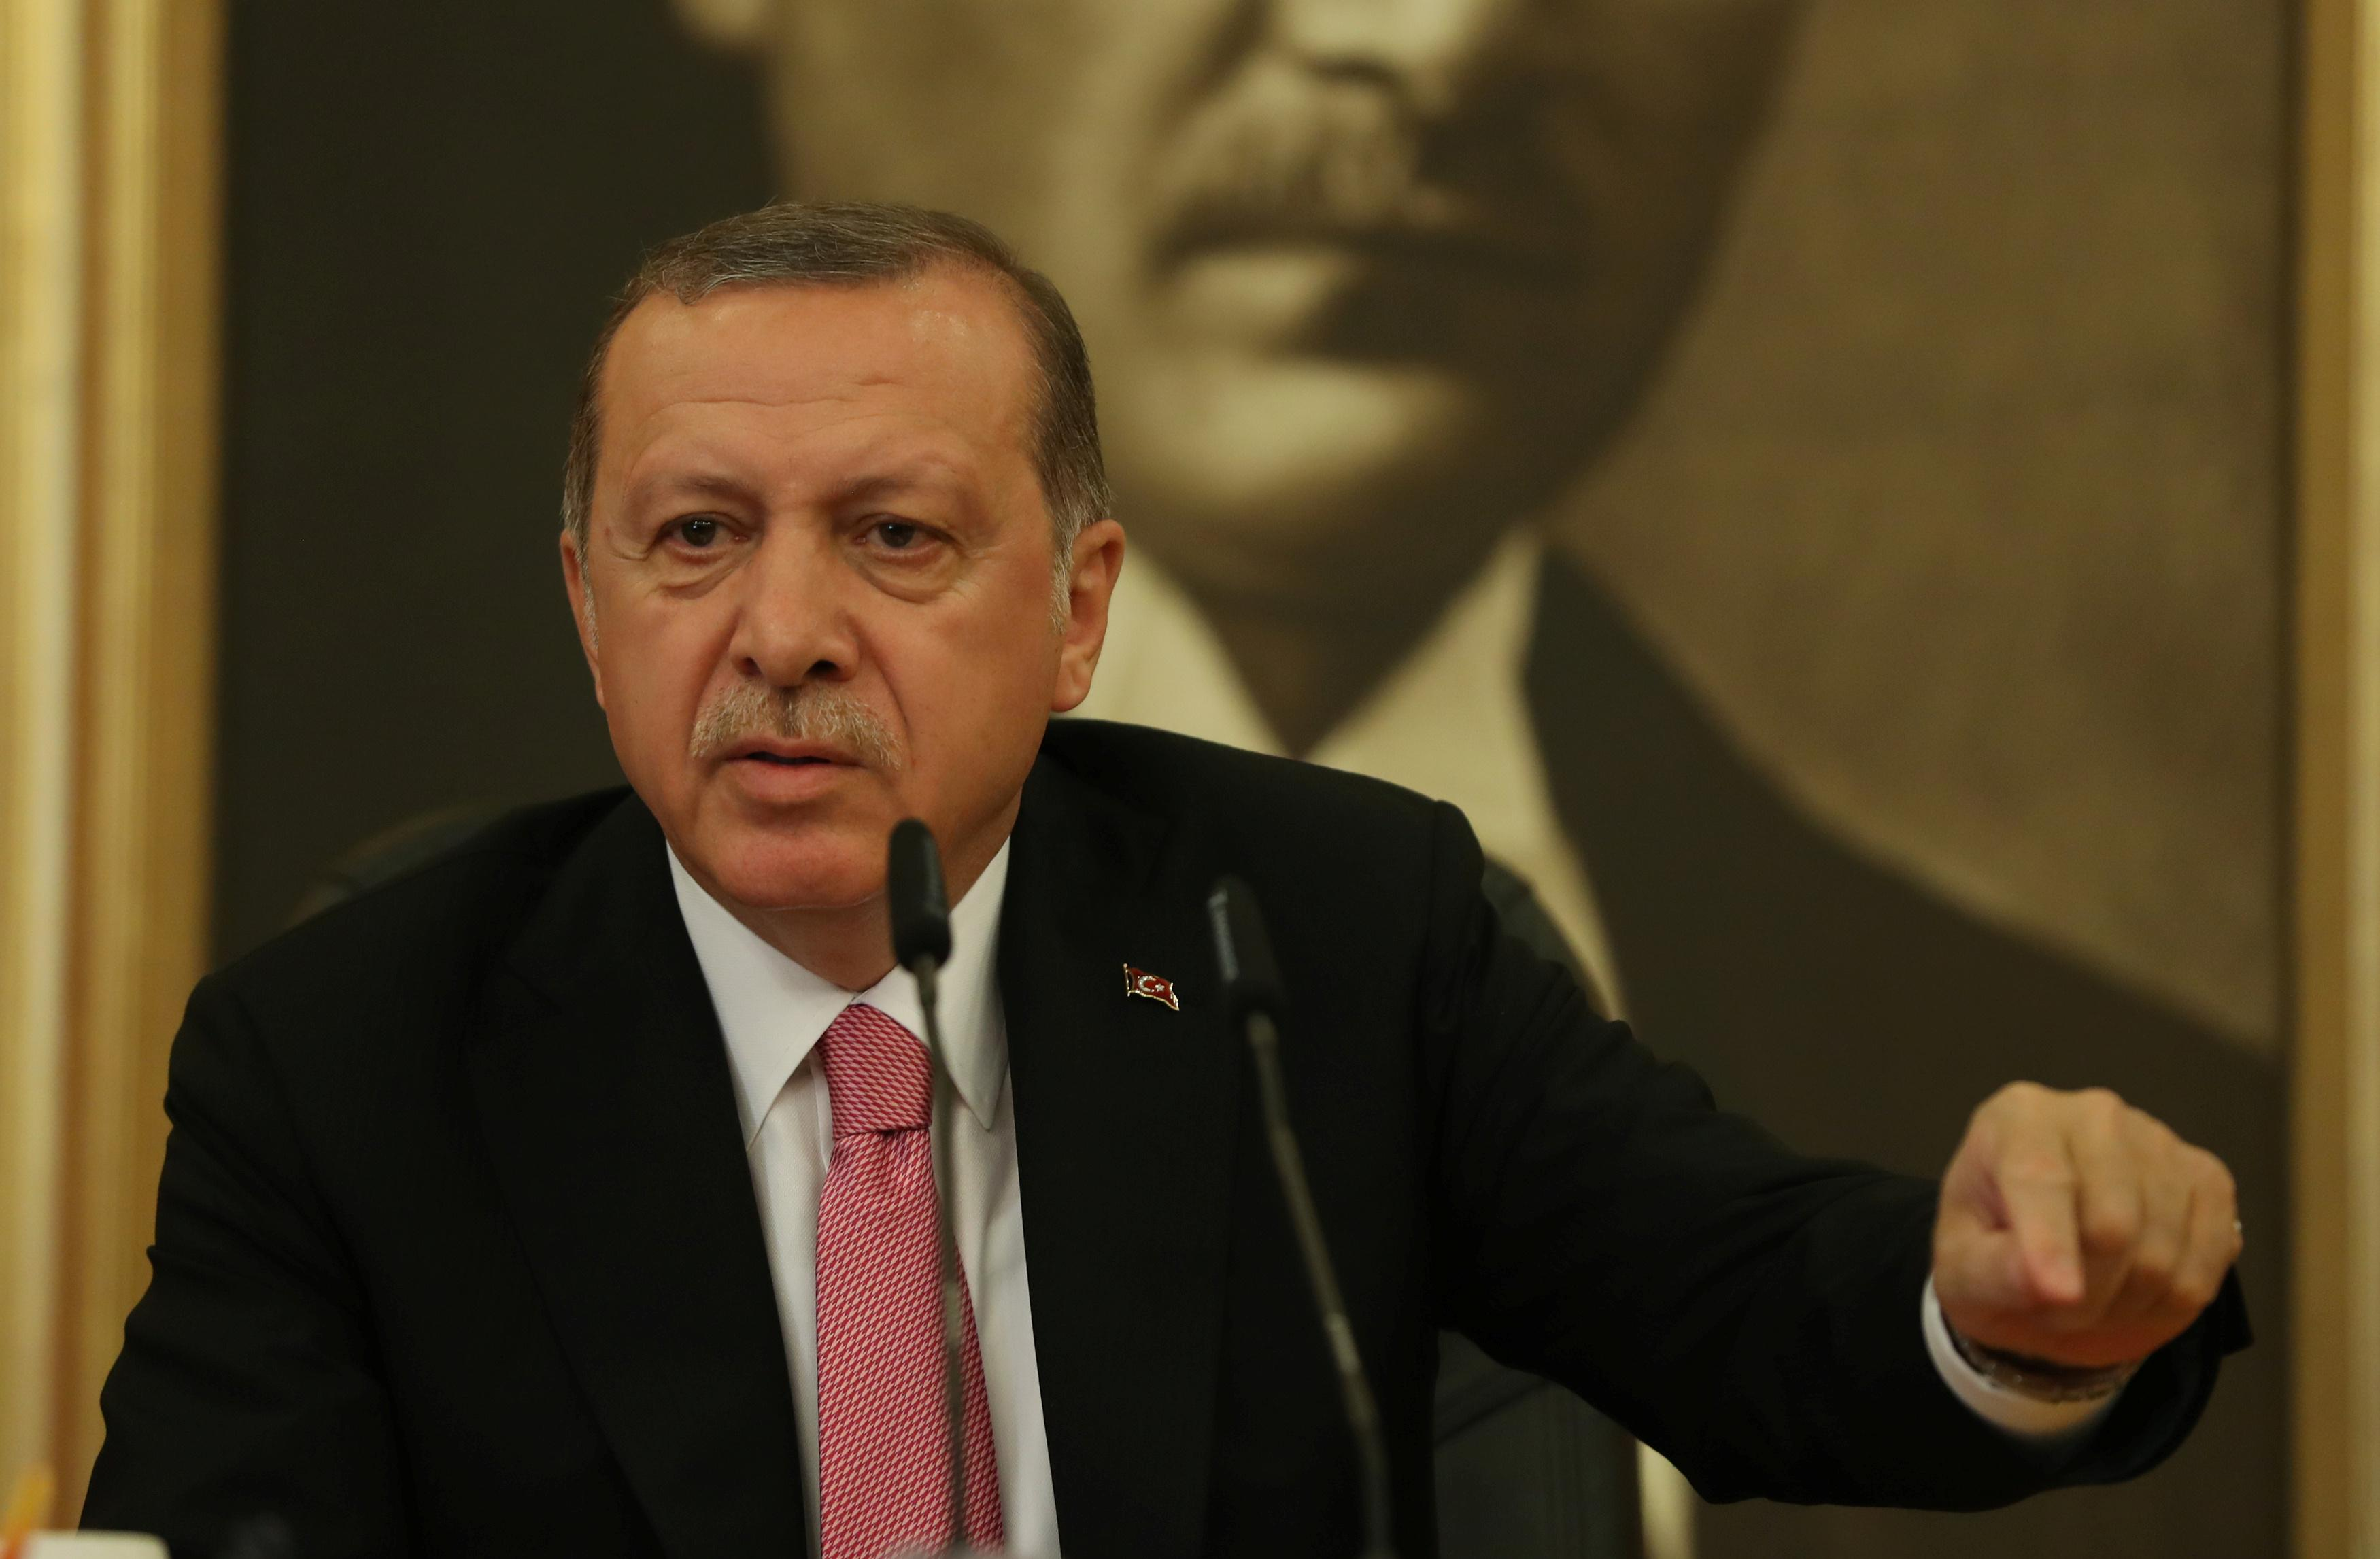 U.S. wrong to push Turkey to drop Russian defenses: Erdogan